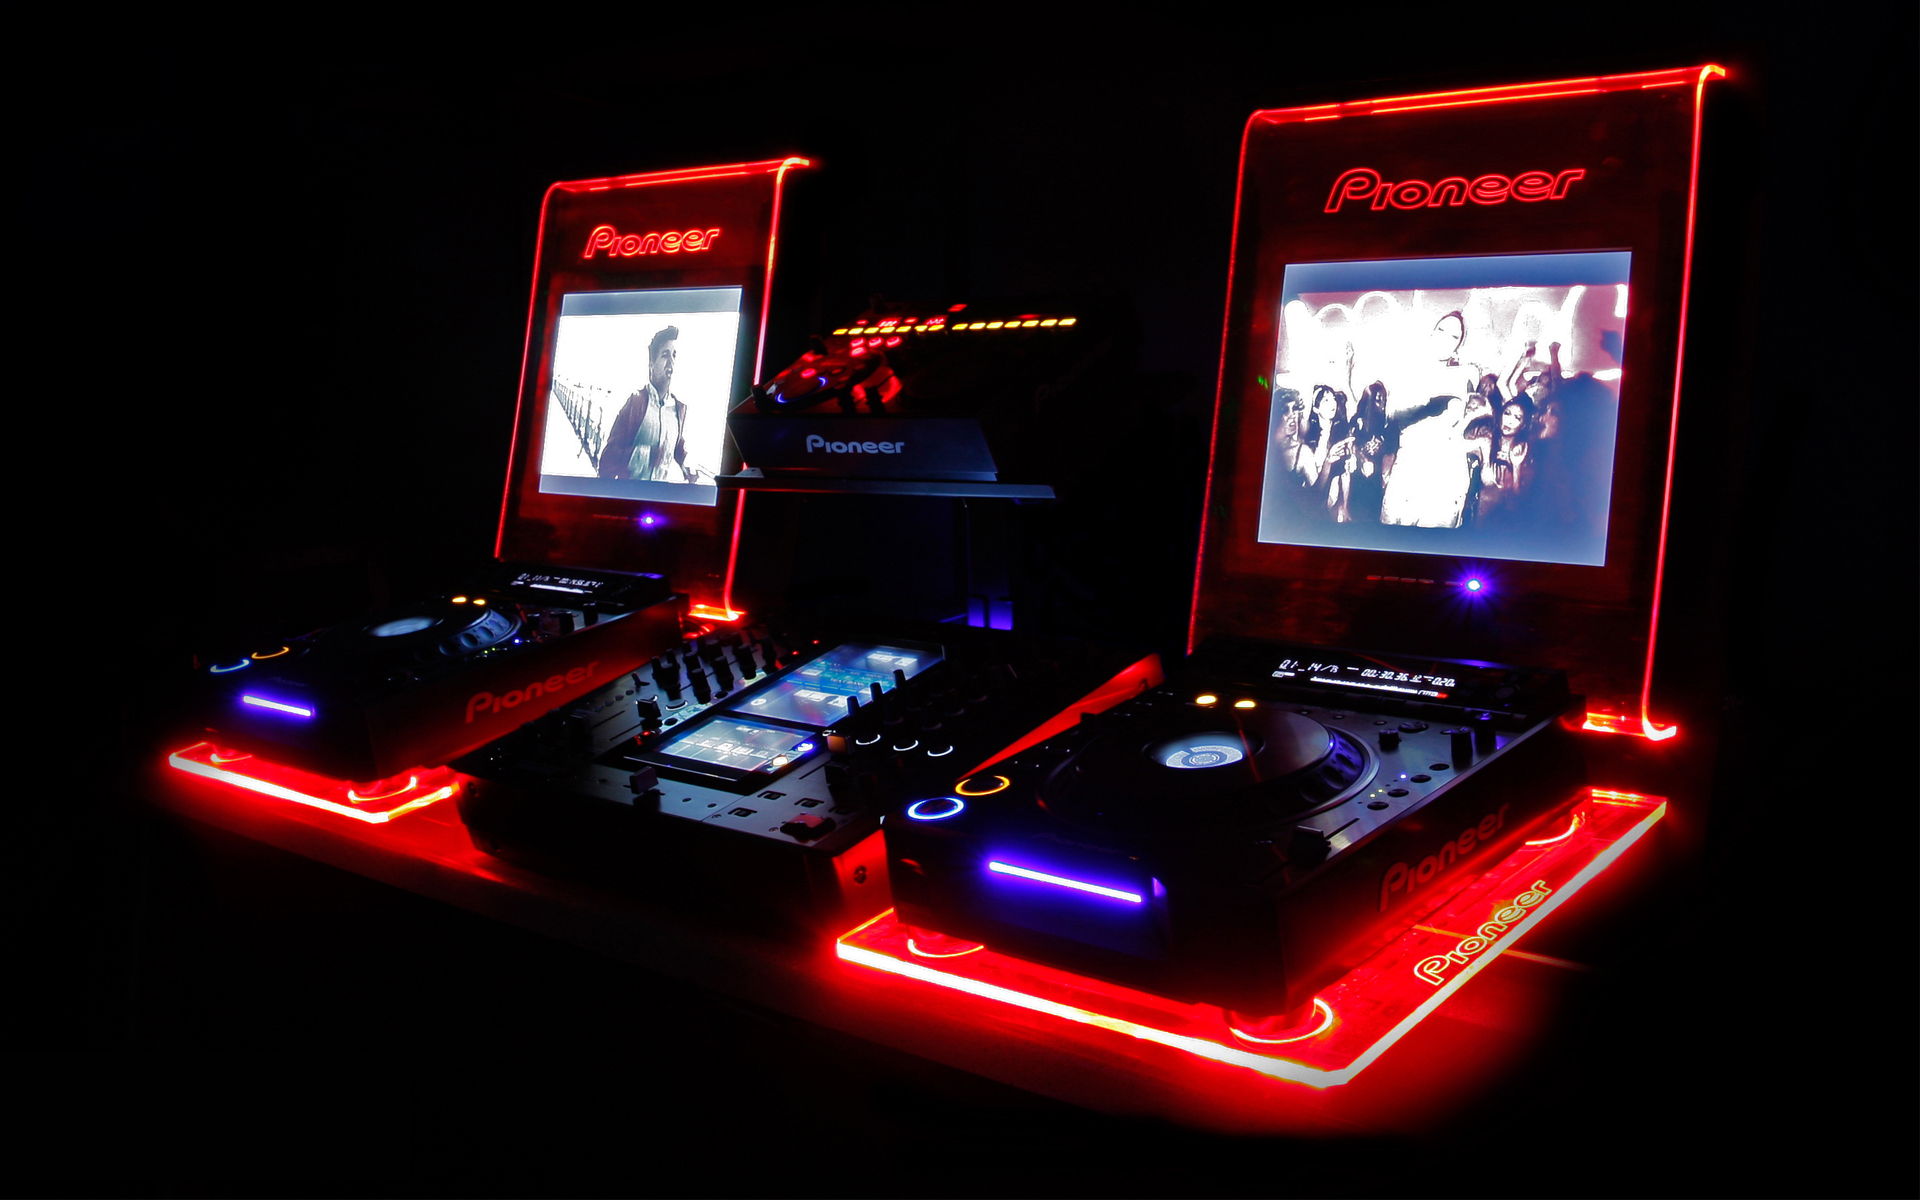 setup with led lights - dj setup at fundjstuff